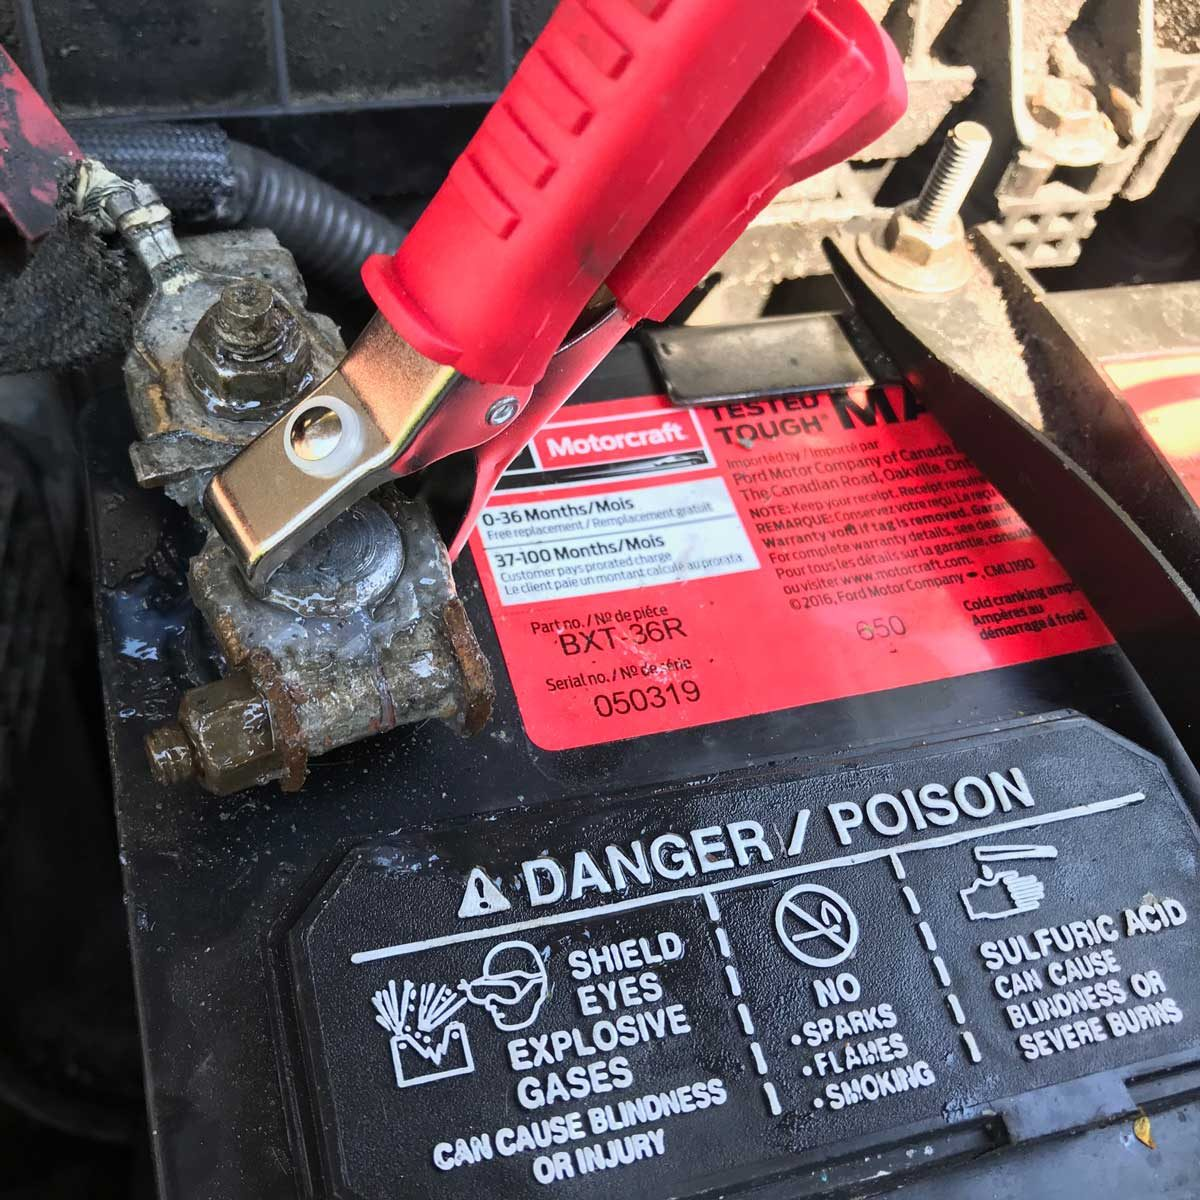 How to test a car battery: connect the tester